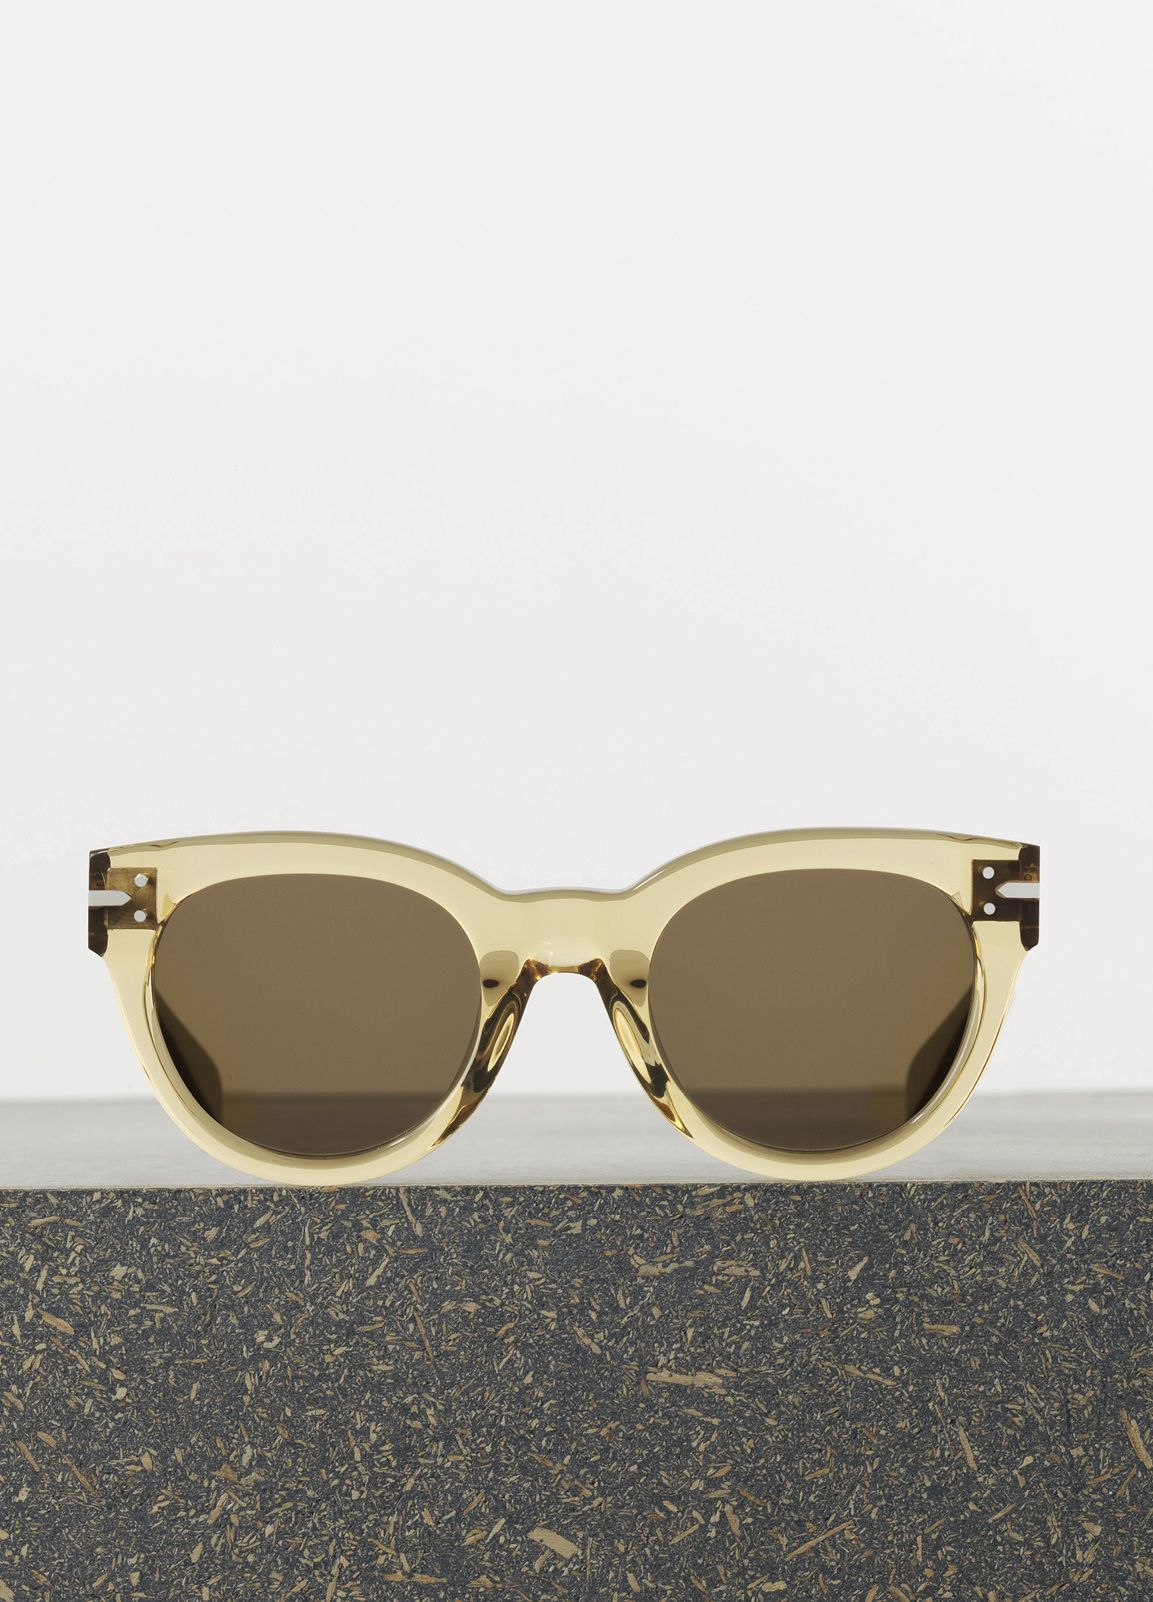 Spring   Summer Collection 2015 collections - Sunglasses   CÉLINE ... 600c5107bf